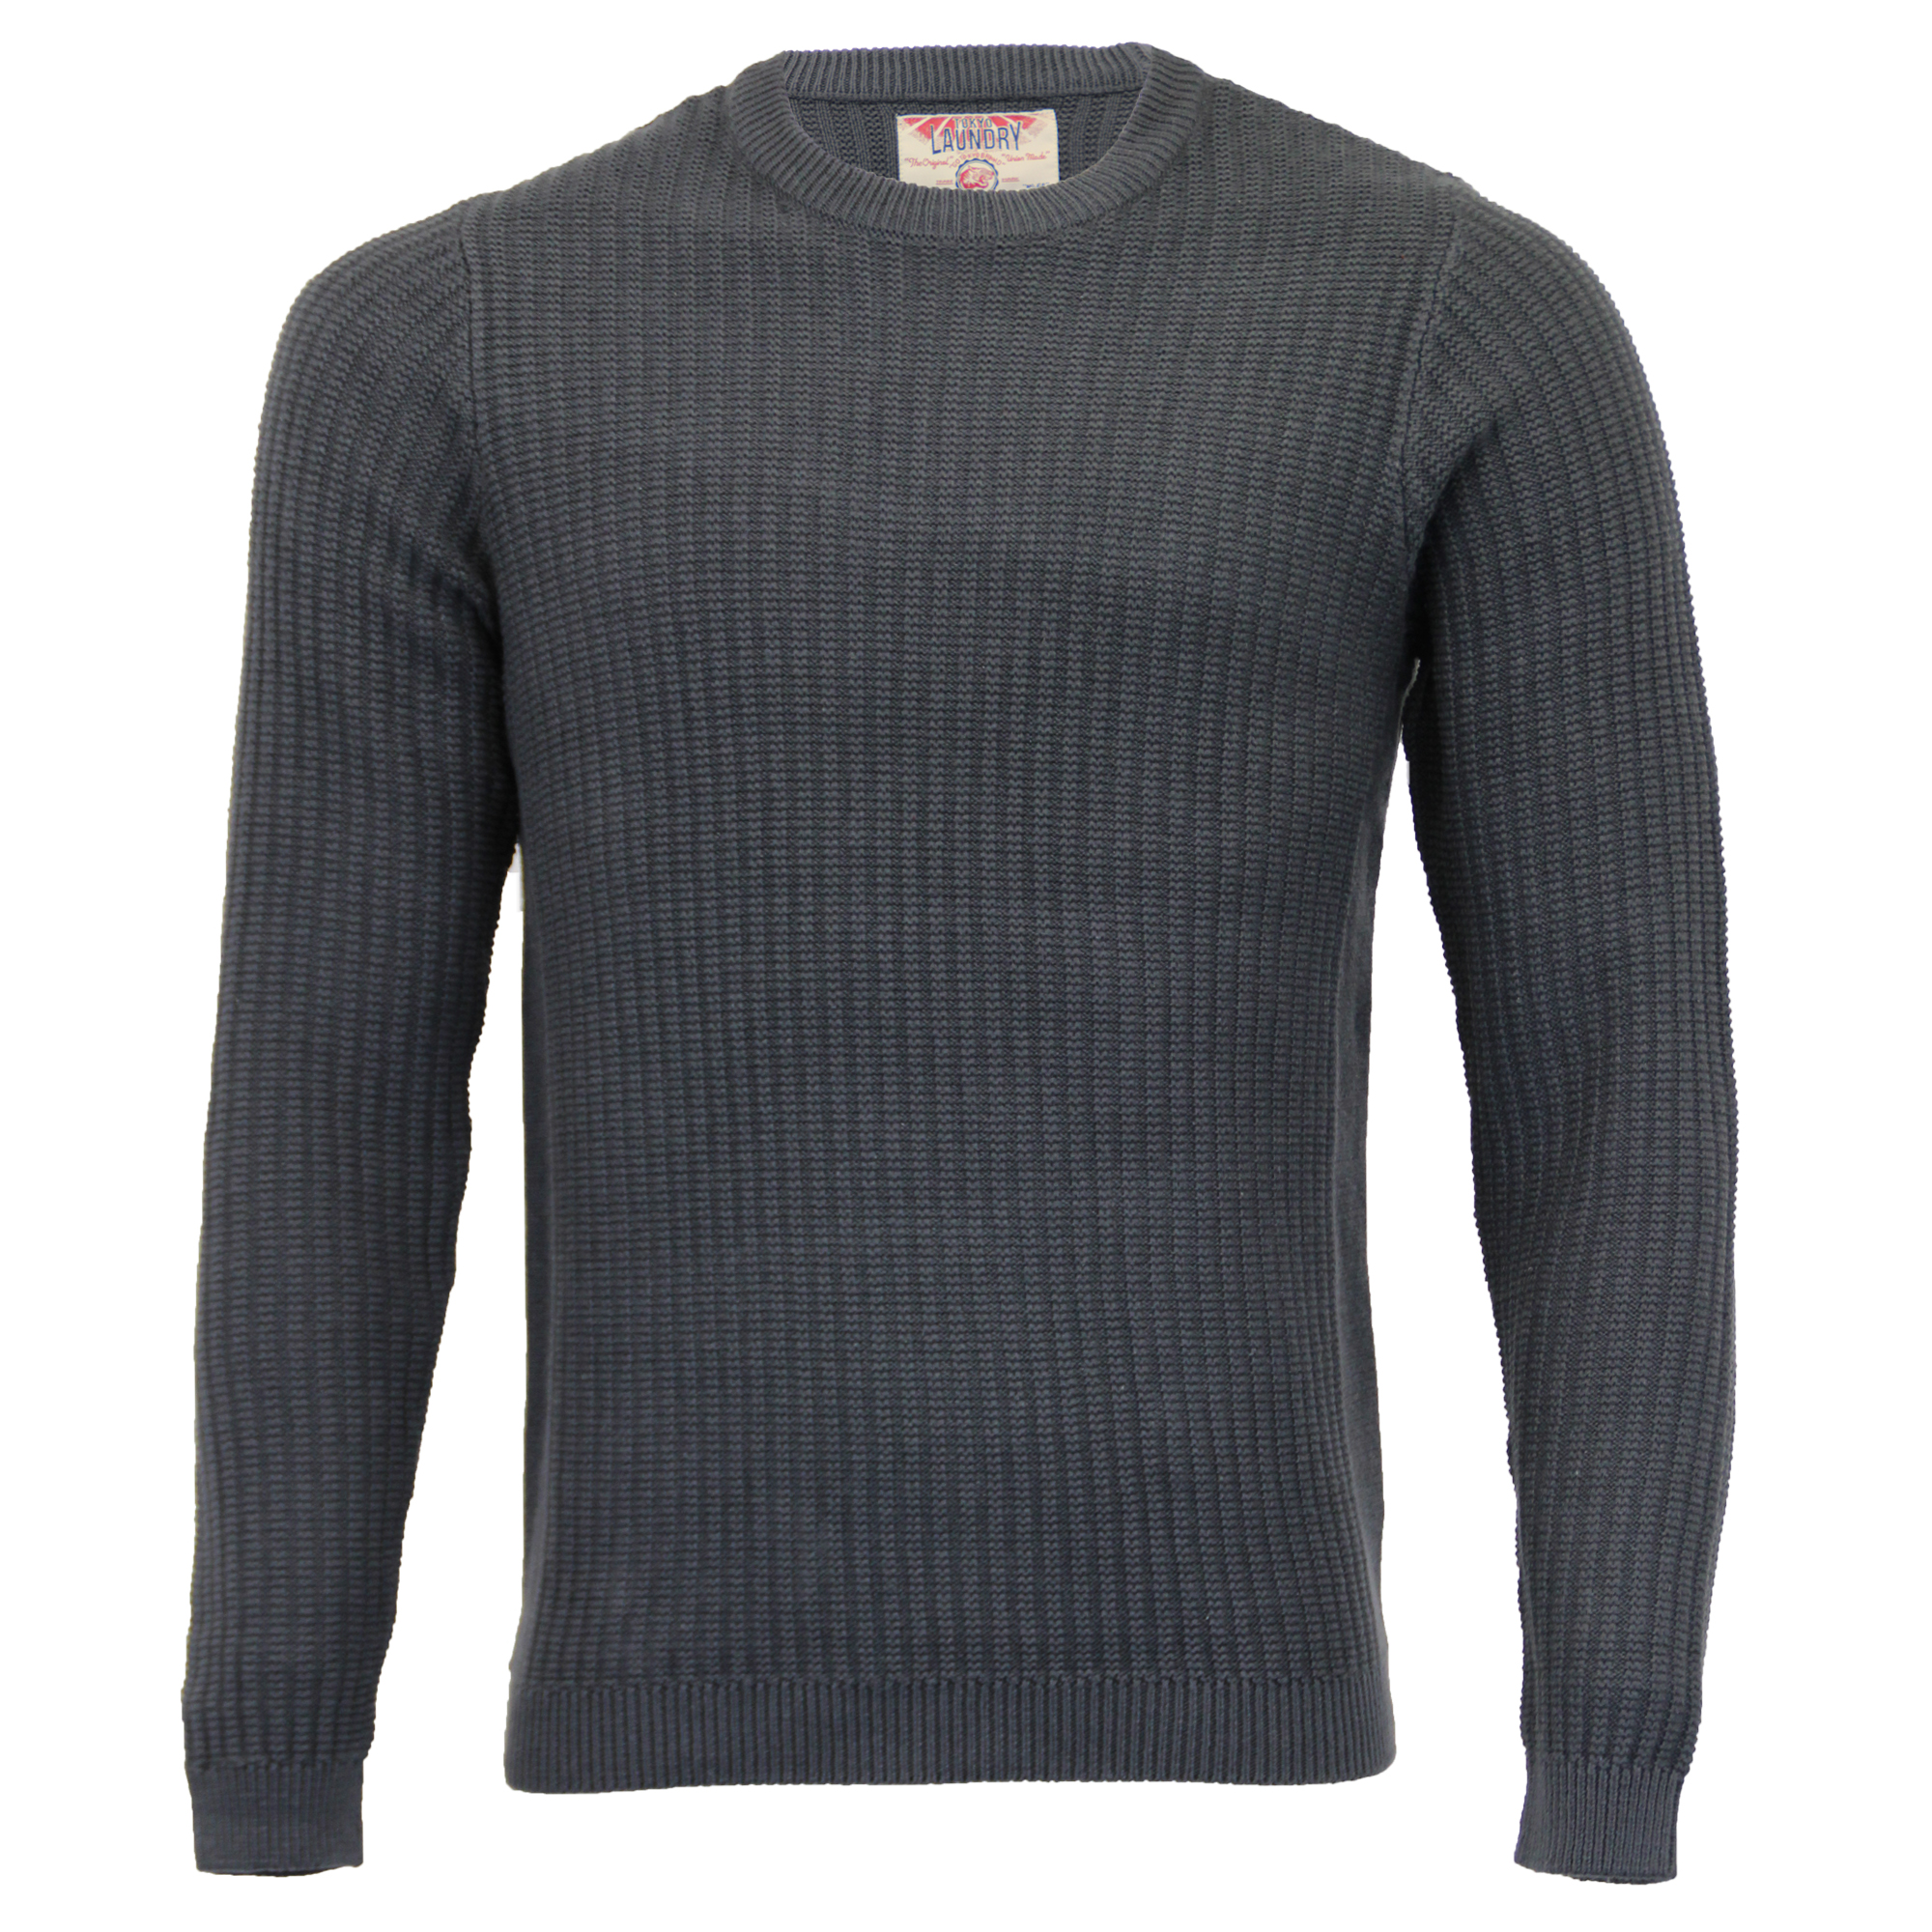 Mens-Knitted-Jumper-Tokyo-Laundry-Ribbed-Sweater-Pullover-Top-Crew-Neck-Winter thumbnail 2